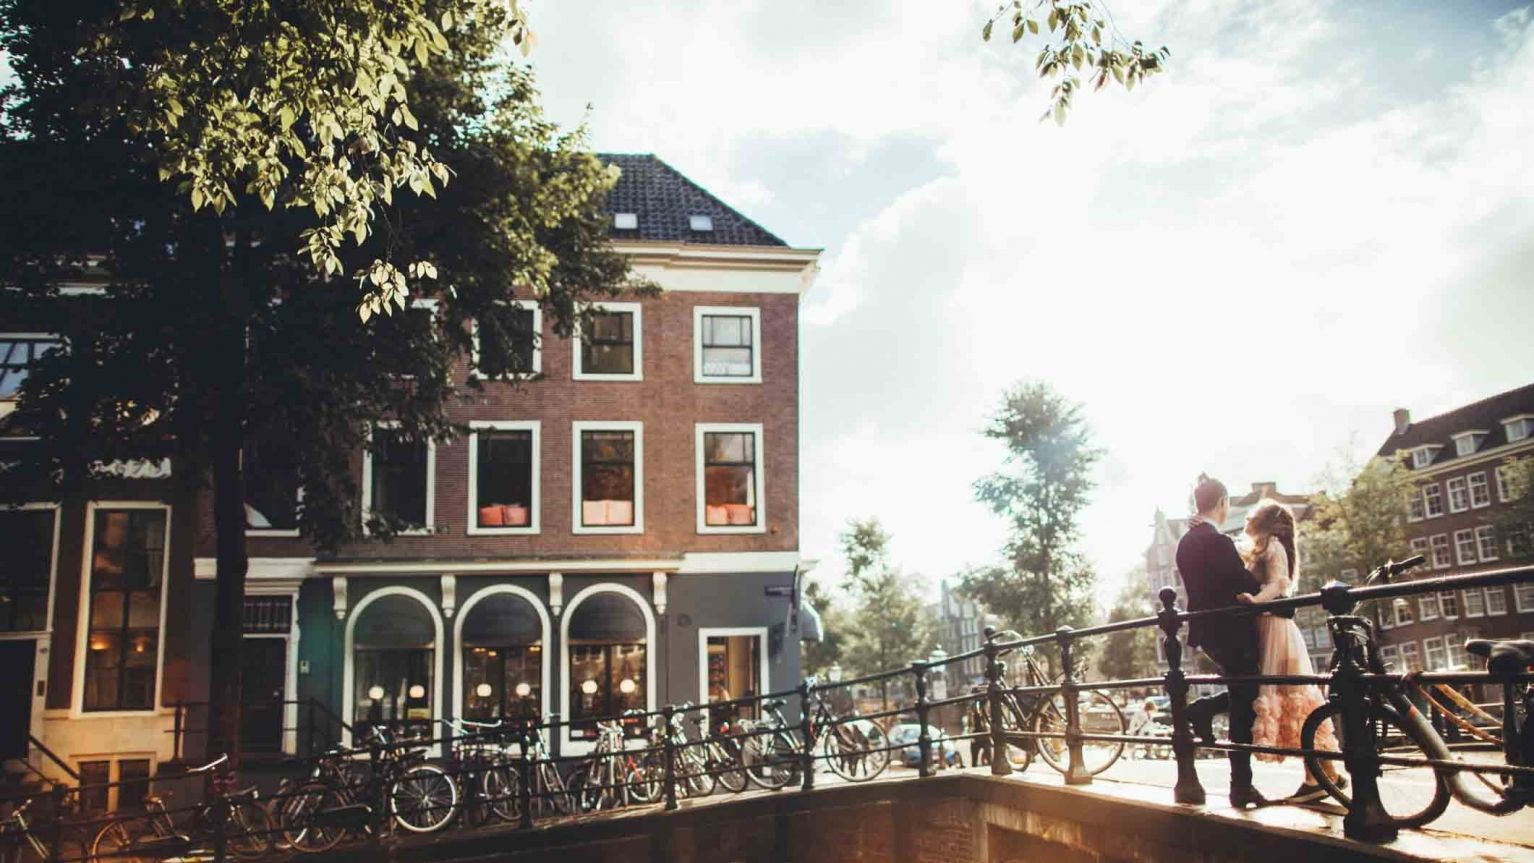 Conservatorium Hotel | City Centre, Luxury 5-Star Hotel in Amsterdam